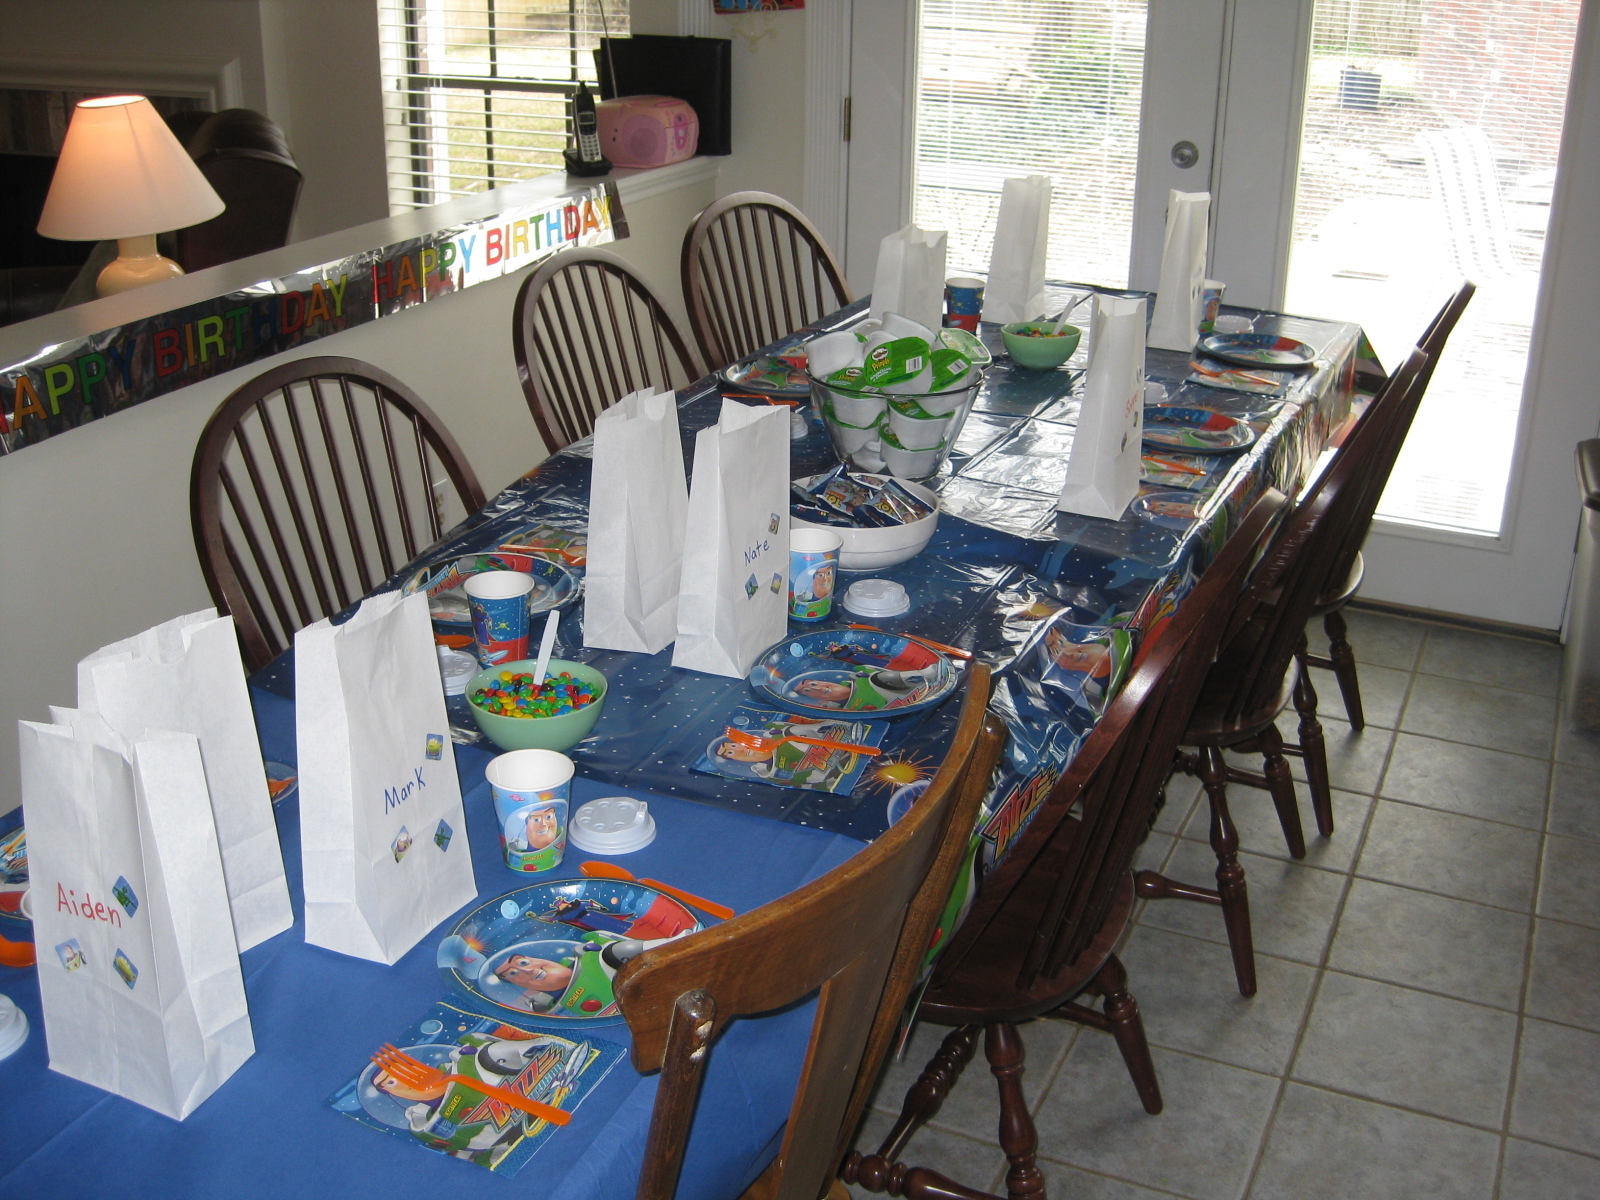 The table setting for the Buzz Lightyear Party & Heidiu0027s Recipes: Buzz Lightyear Birthday Party